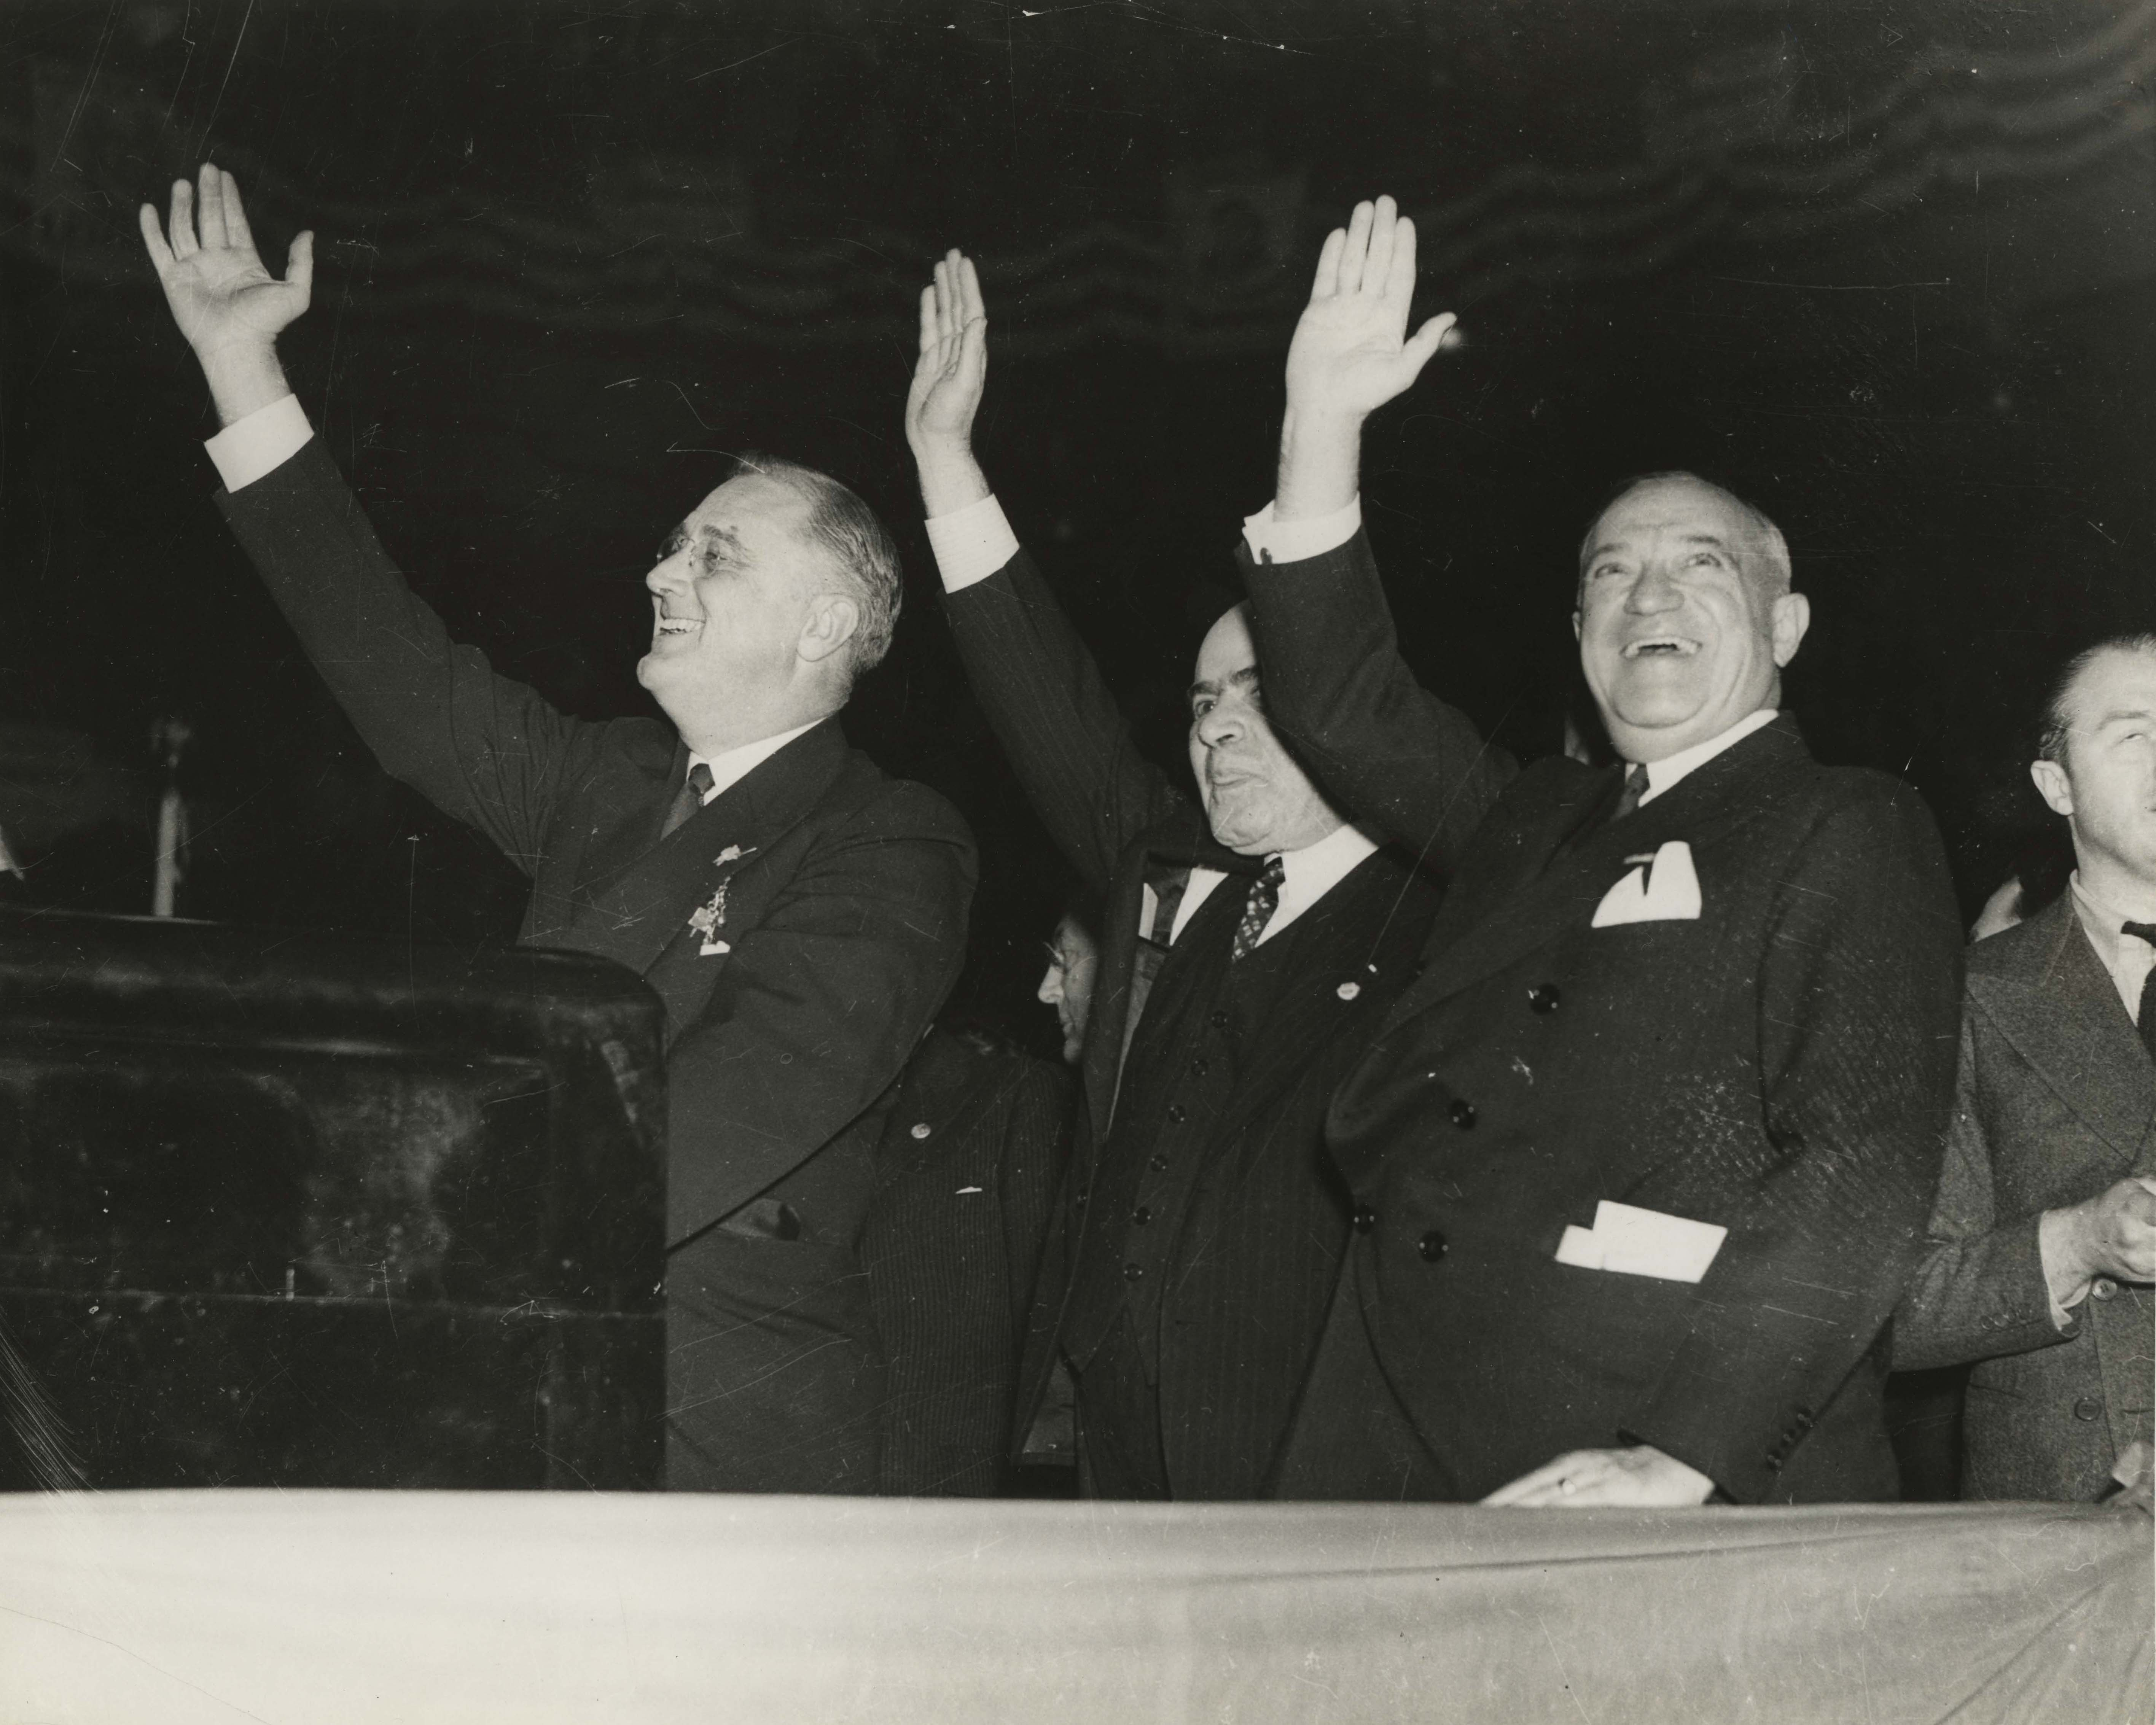 FDR, Lehman & Wagner at Madison Square Garden, October 31, 1936